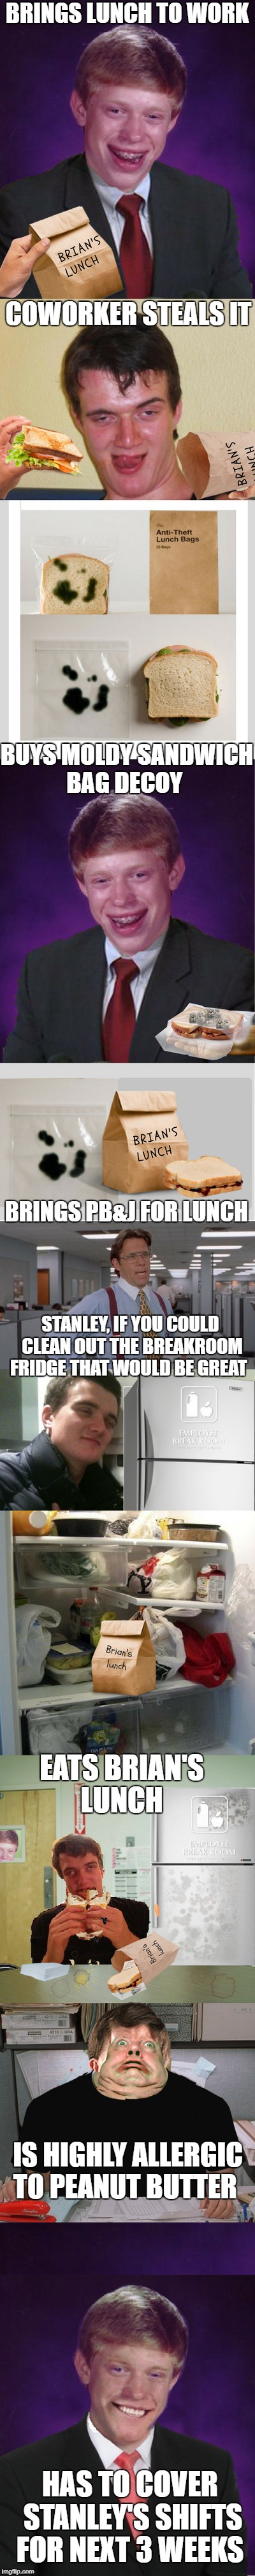 breakroom lunch thieves every place has one  | BRINGS LUNCH TO WORK HAS TO COVER STANLEY'S SHIFTS FOR NEXT 3 WEEKS COWORKER STEALS IT BUYS MOLDY SANDWICH BAG DECOY BRINGS PB&J FOR LUNCH S | image tagged in bad luck brian,10 guy,lunch,stealing the front page,memes,funny | made w/ Imgflip meme maker